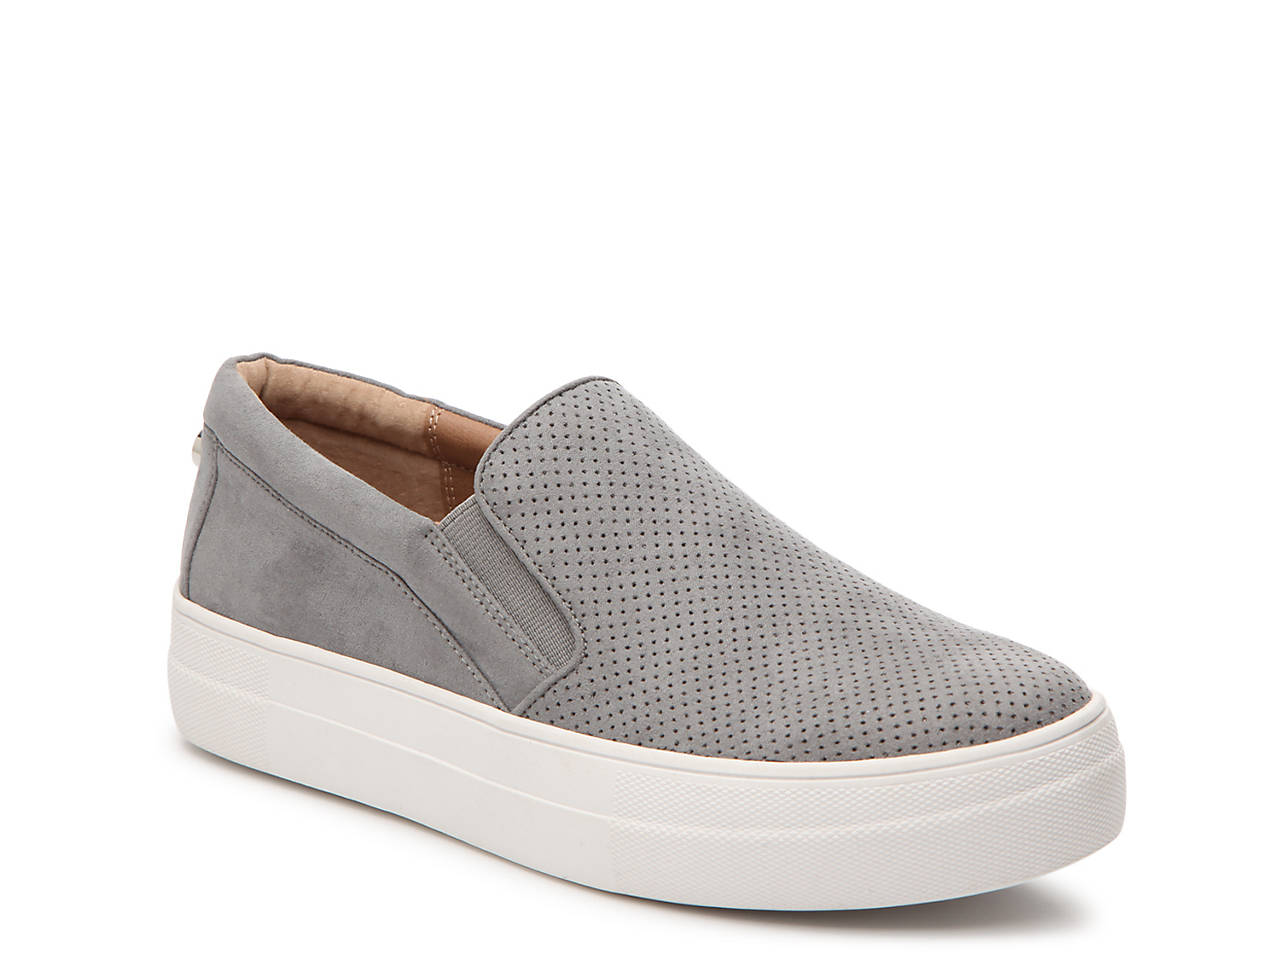 7e8203e952924 Steve Madden Giovana Slip-On Sneaker Women's Shoes | DSW